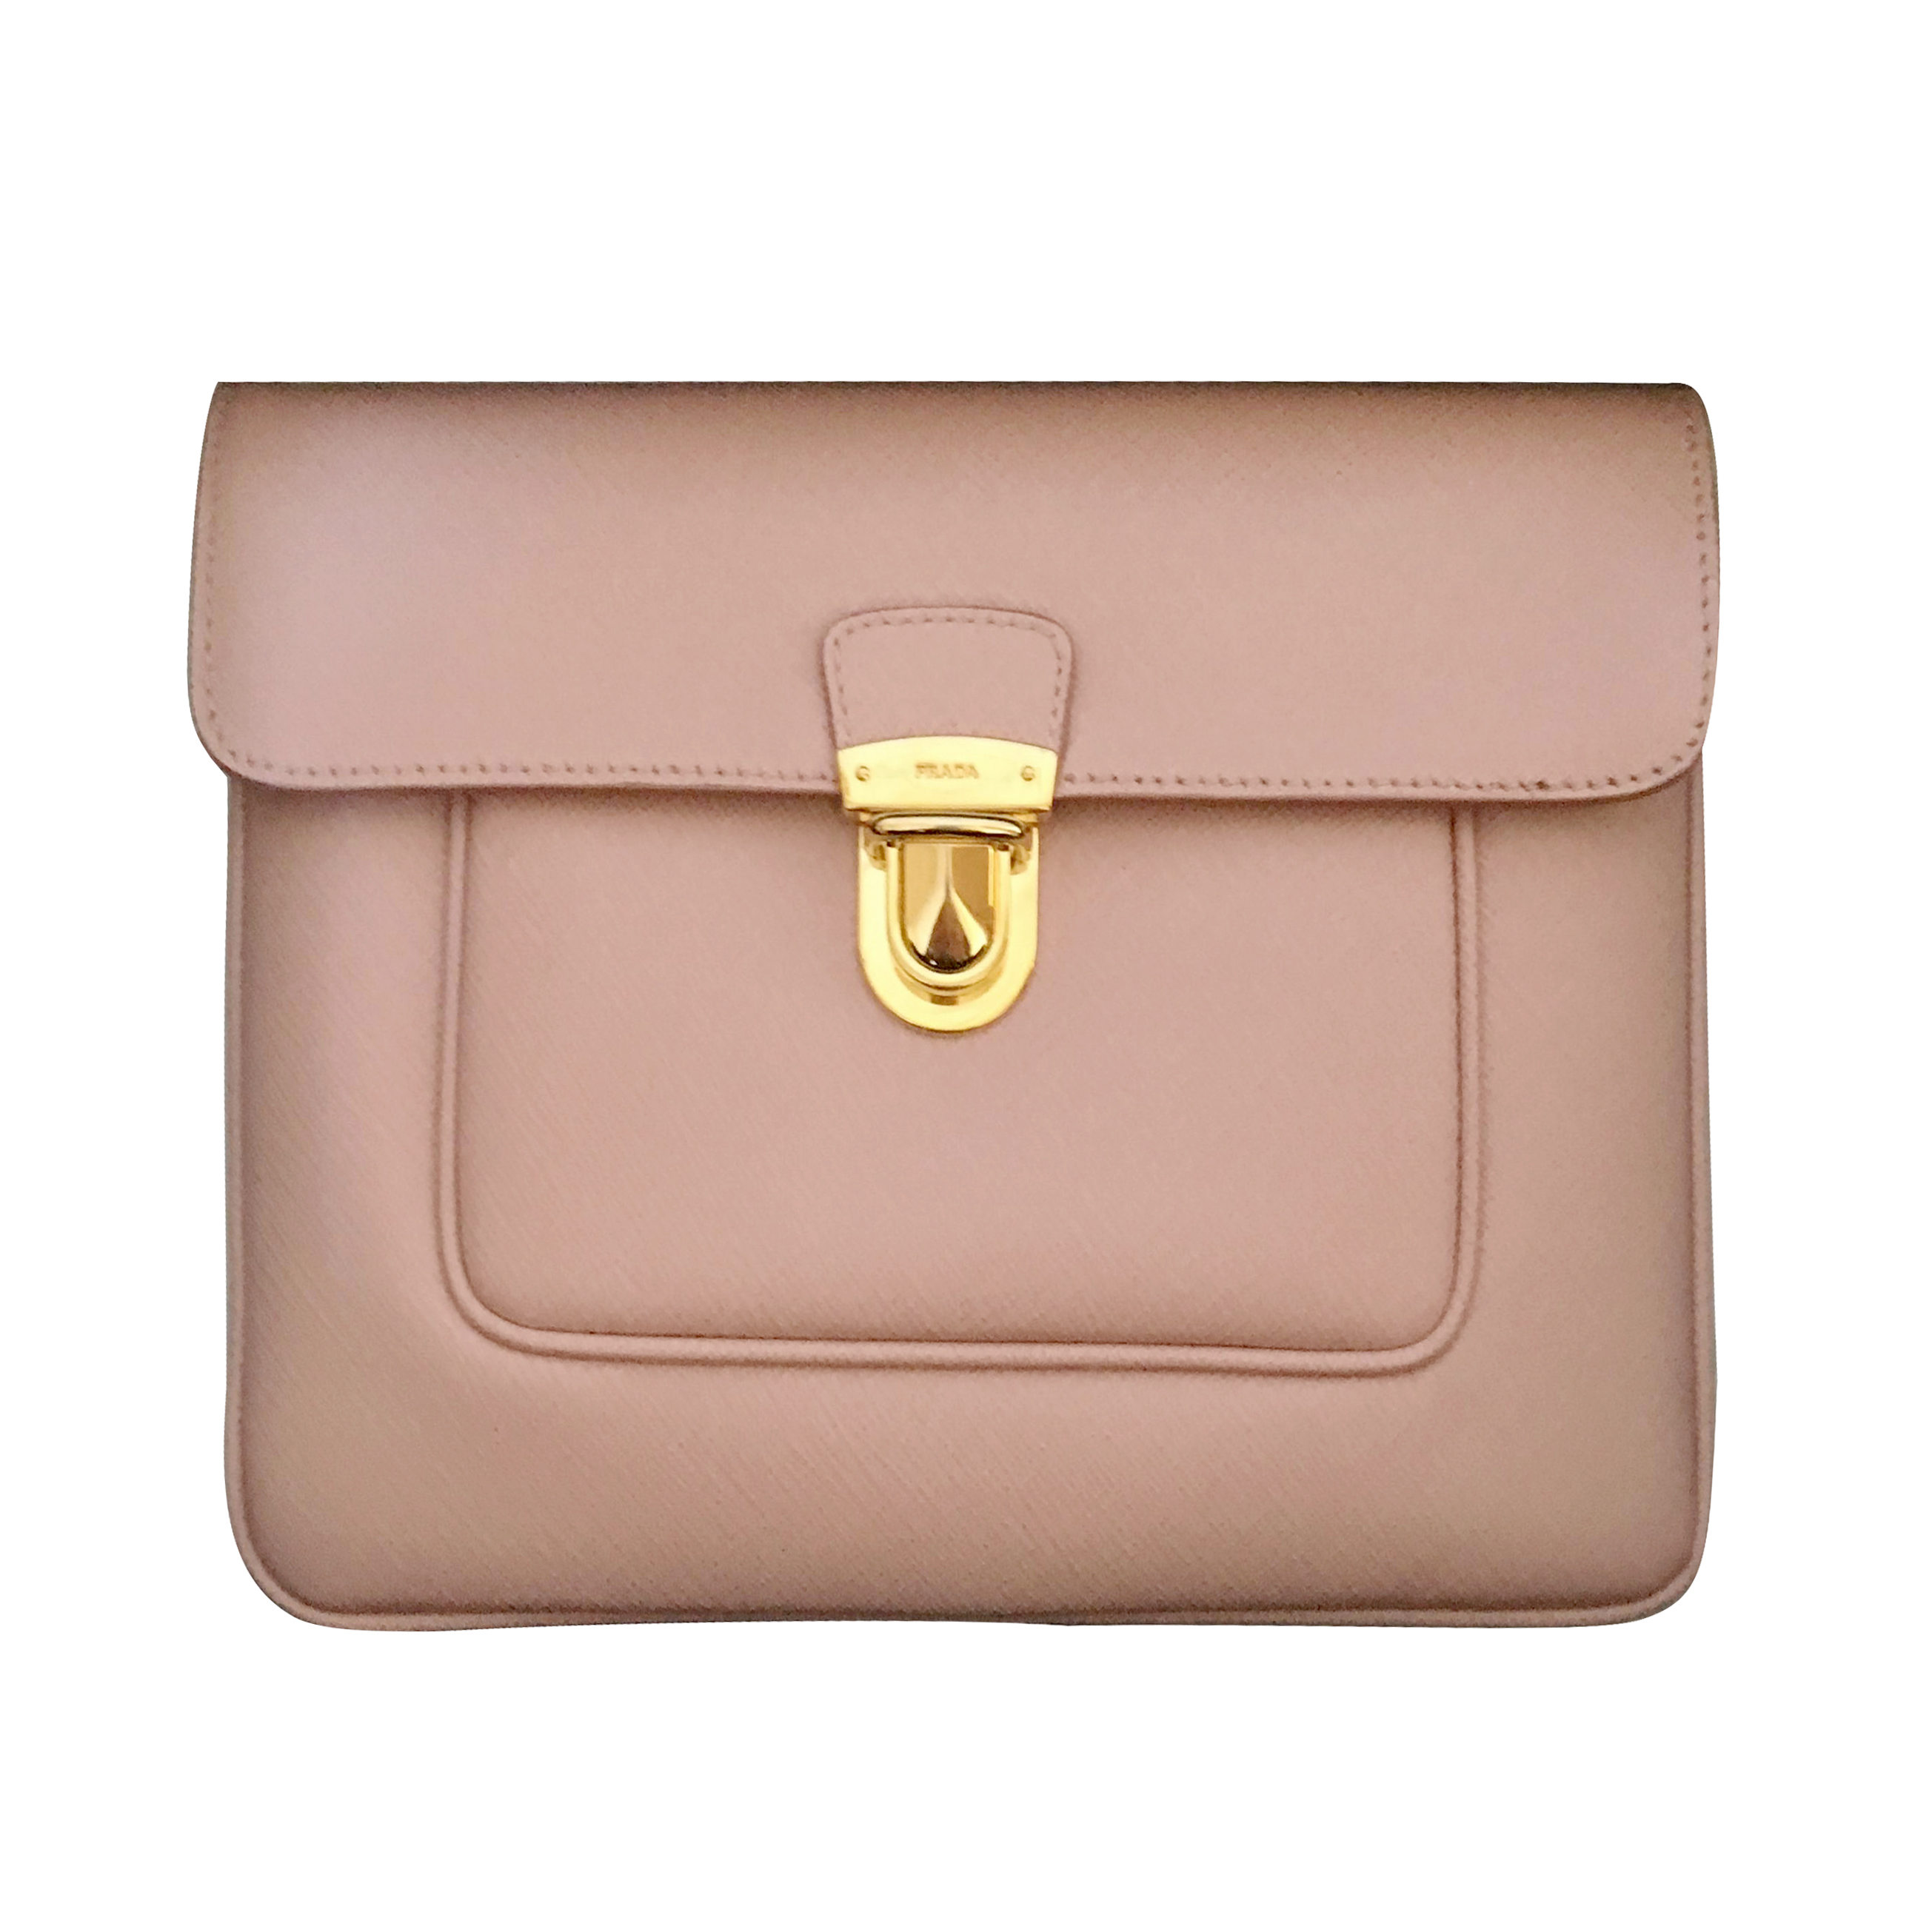 1ede7308037685 Prada Pink Saffiano Leather Clutch Bag | HEWI London